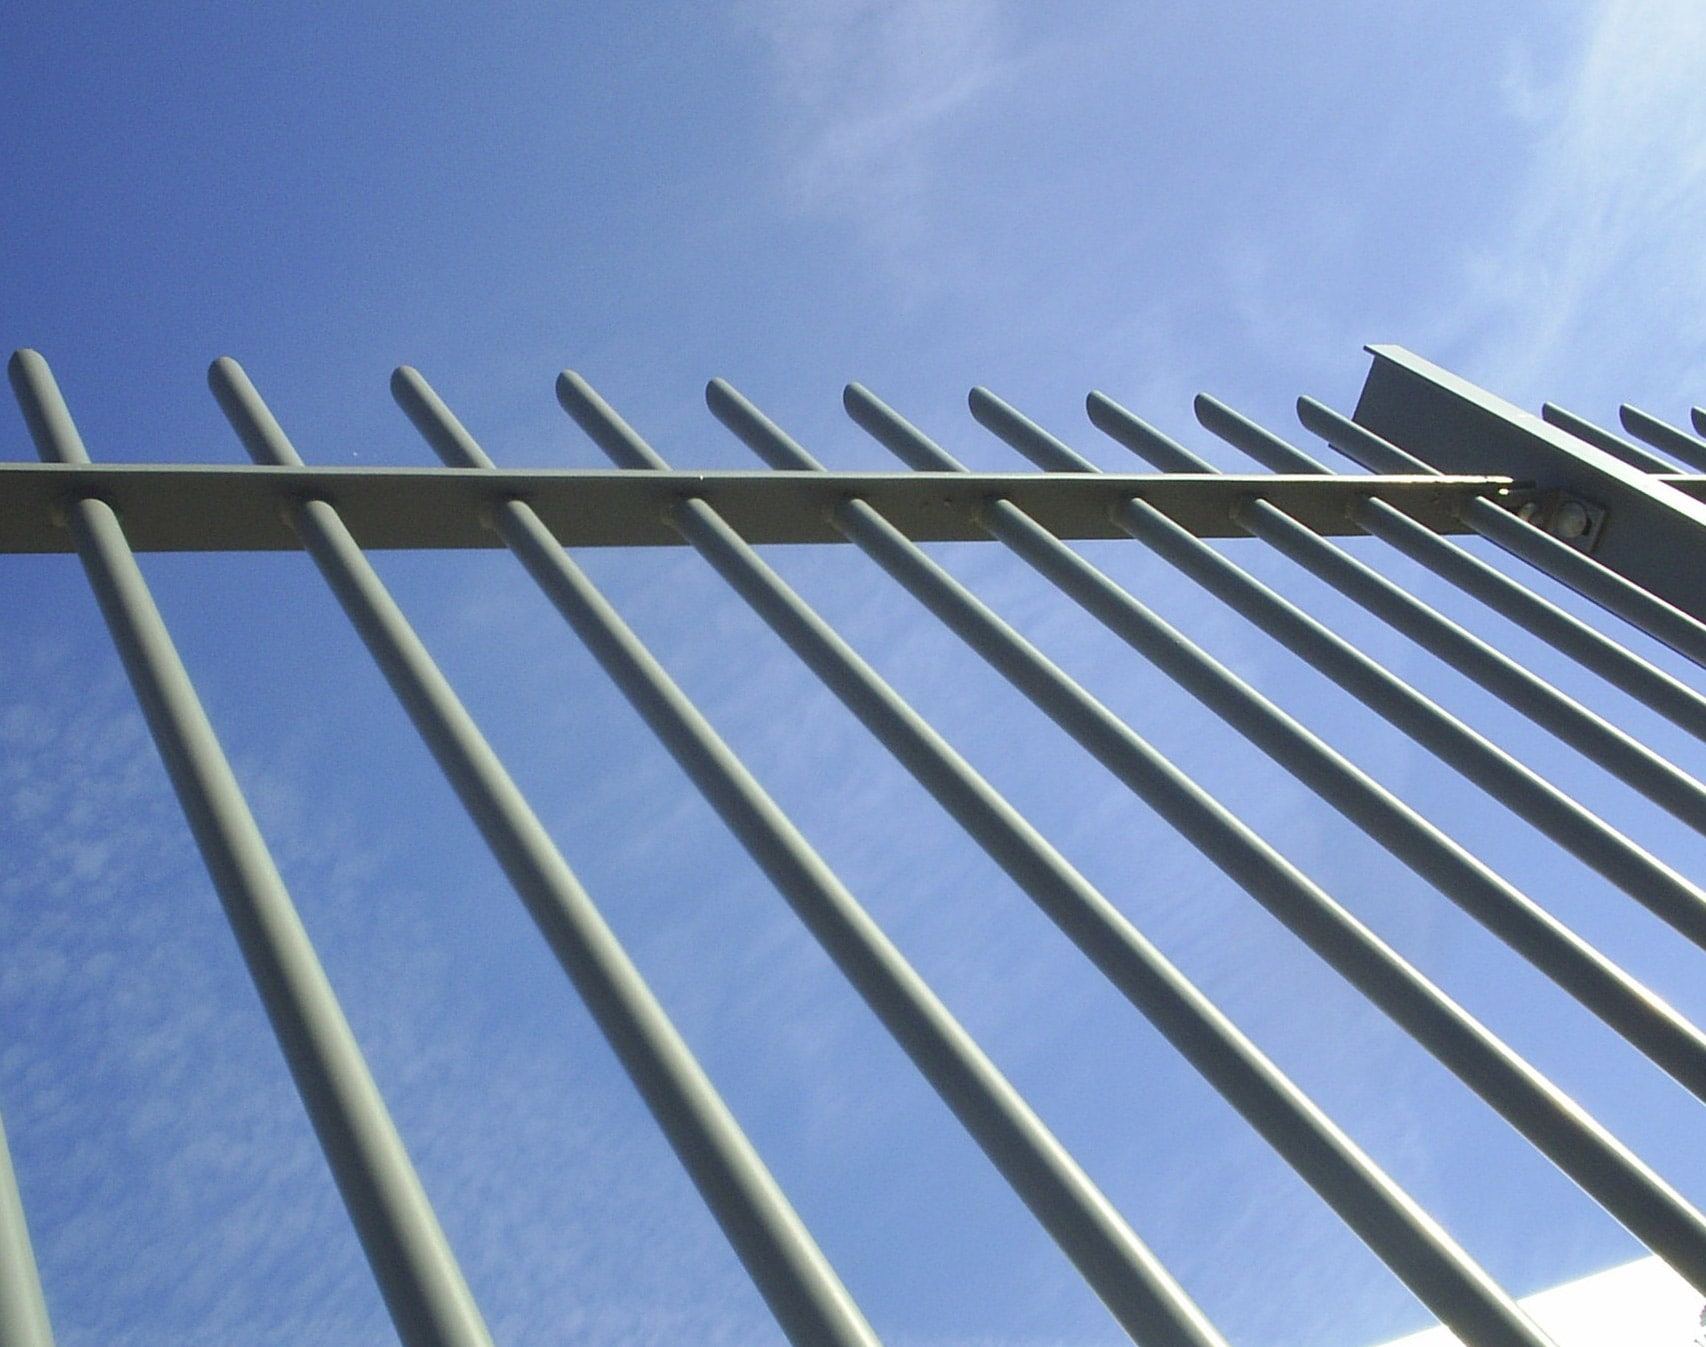 Tubular Steel Railings   Procter Contracts